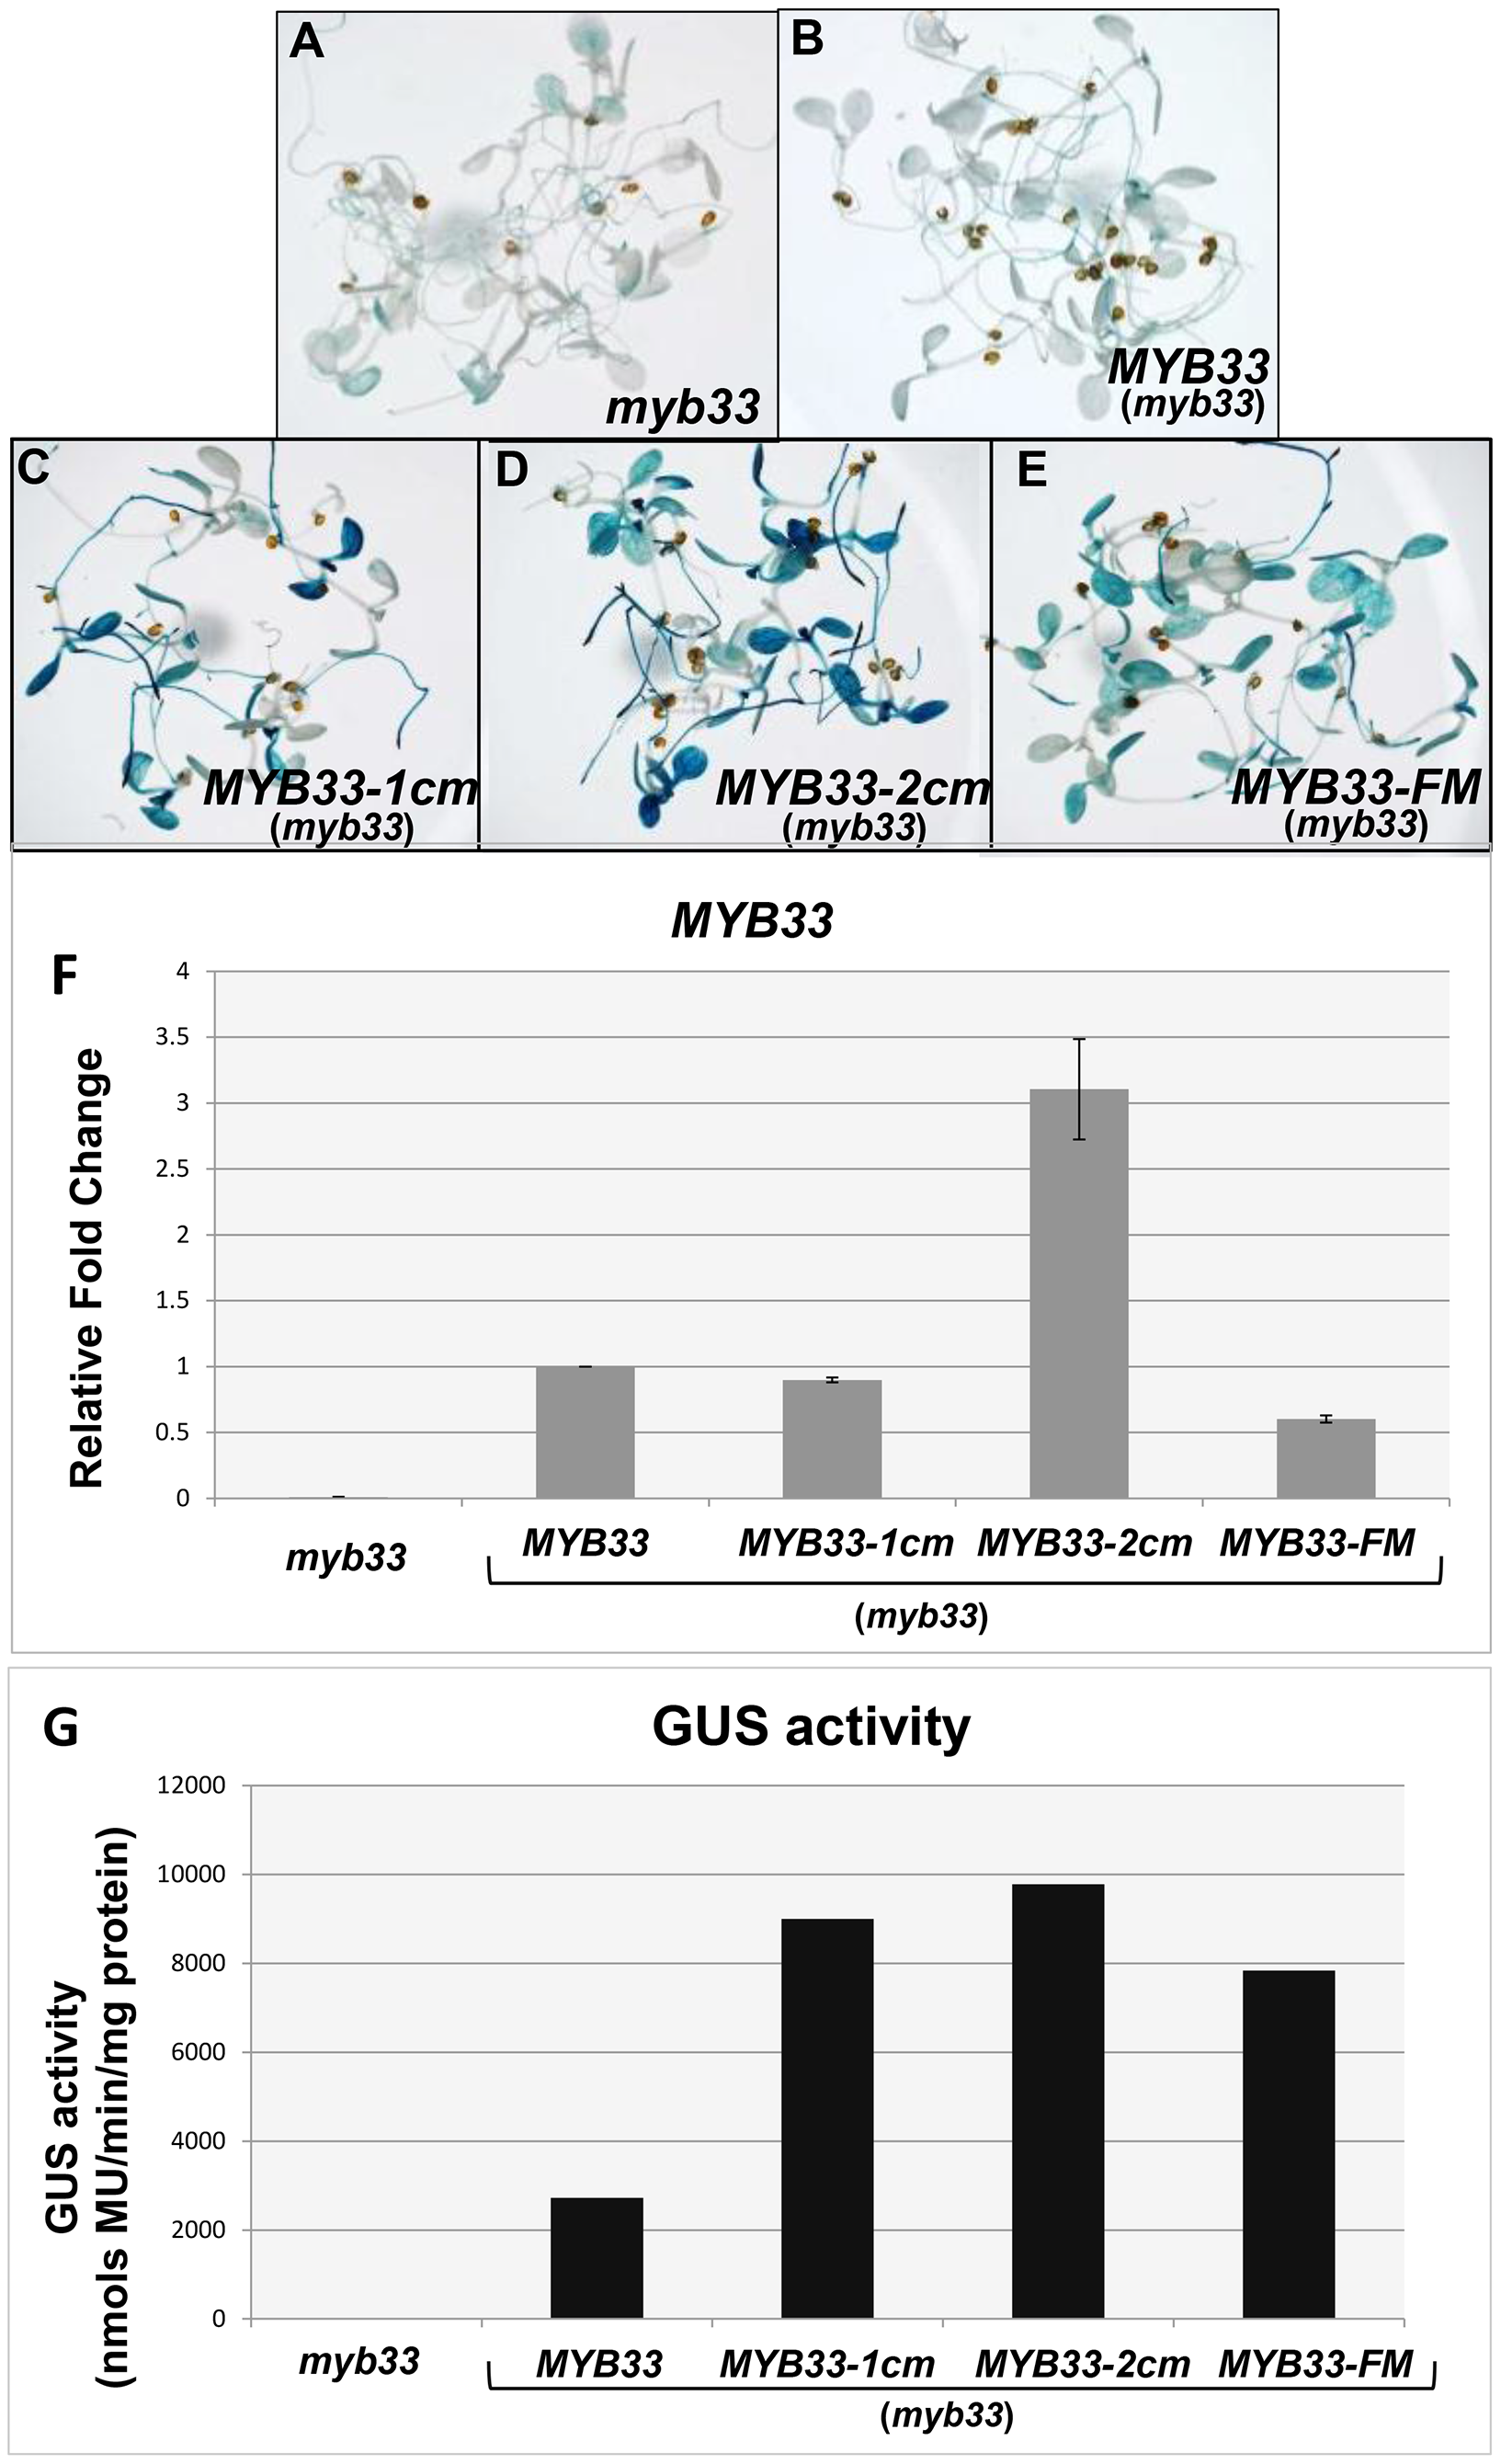 Quantification of <i>MYB33</i> expression using the GUS reporter system.